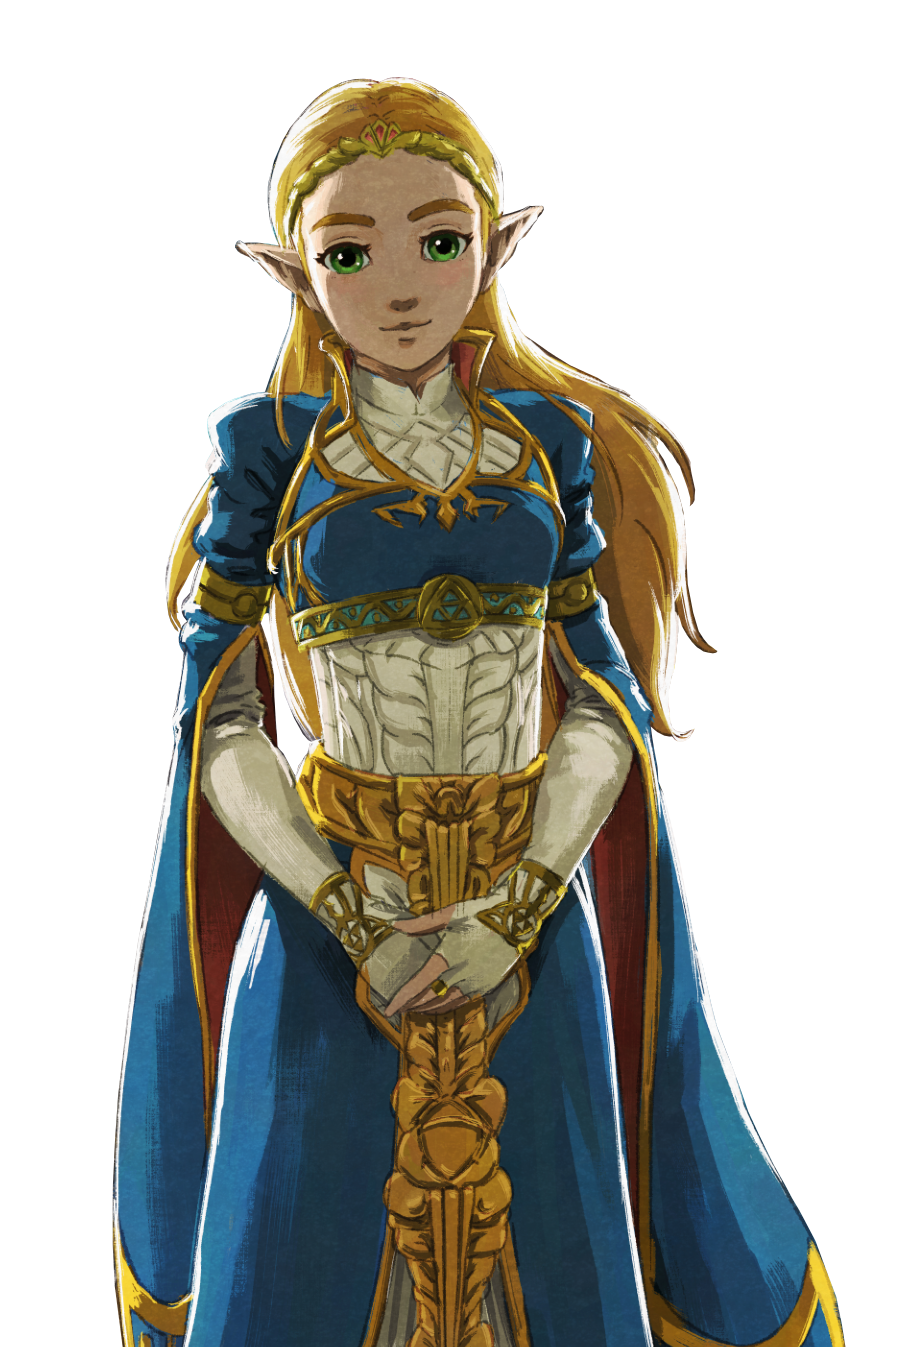 Mythical Of Character Zelda Fictional Princess Breath PNG Image